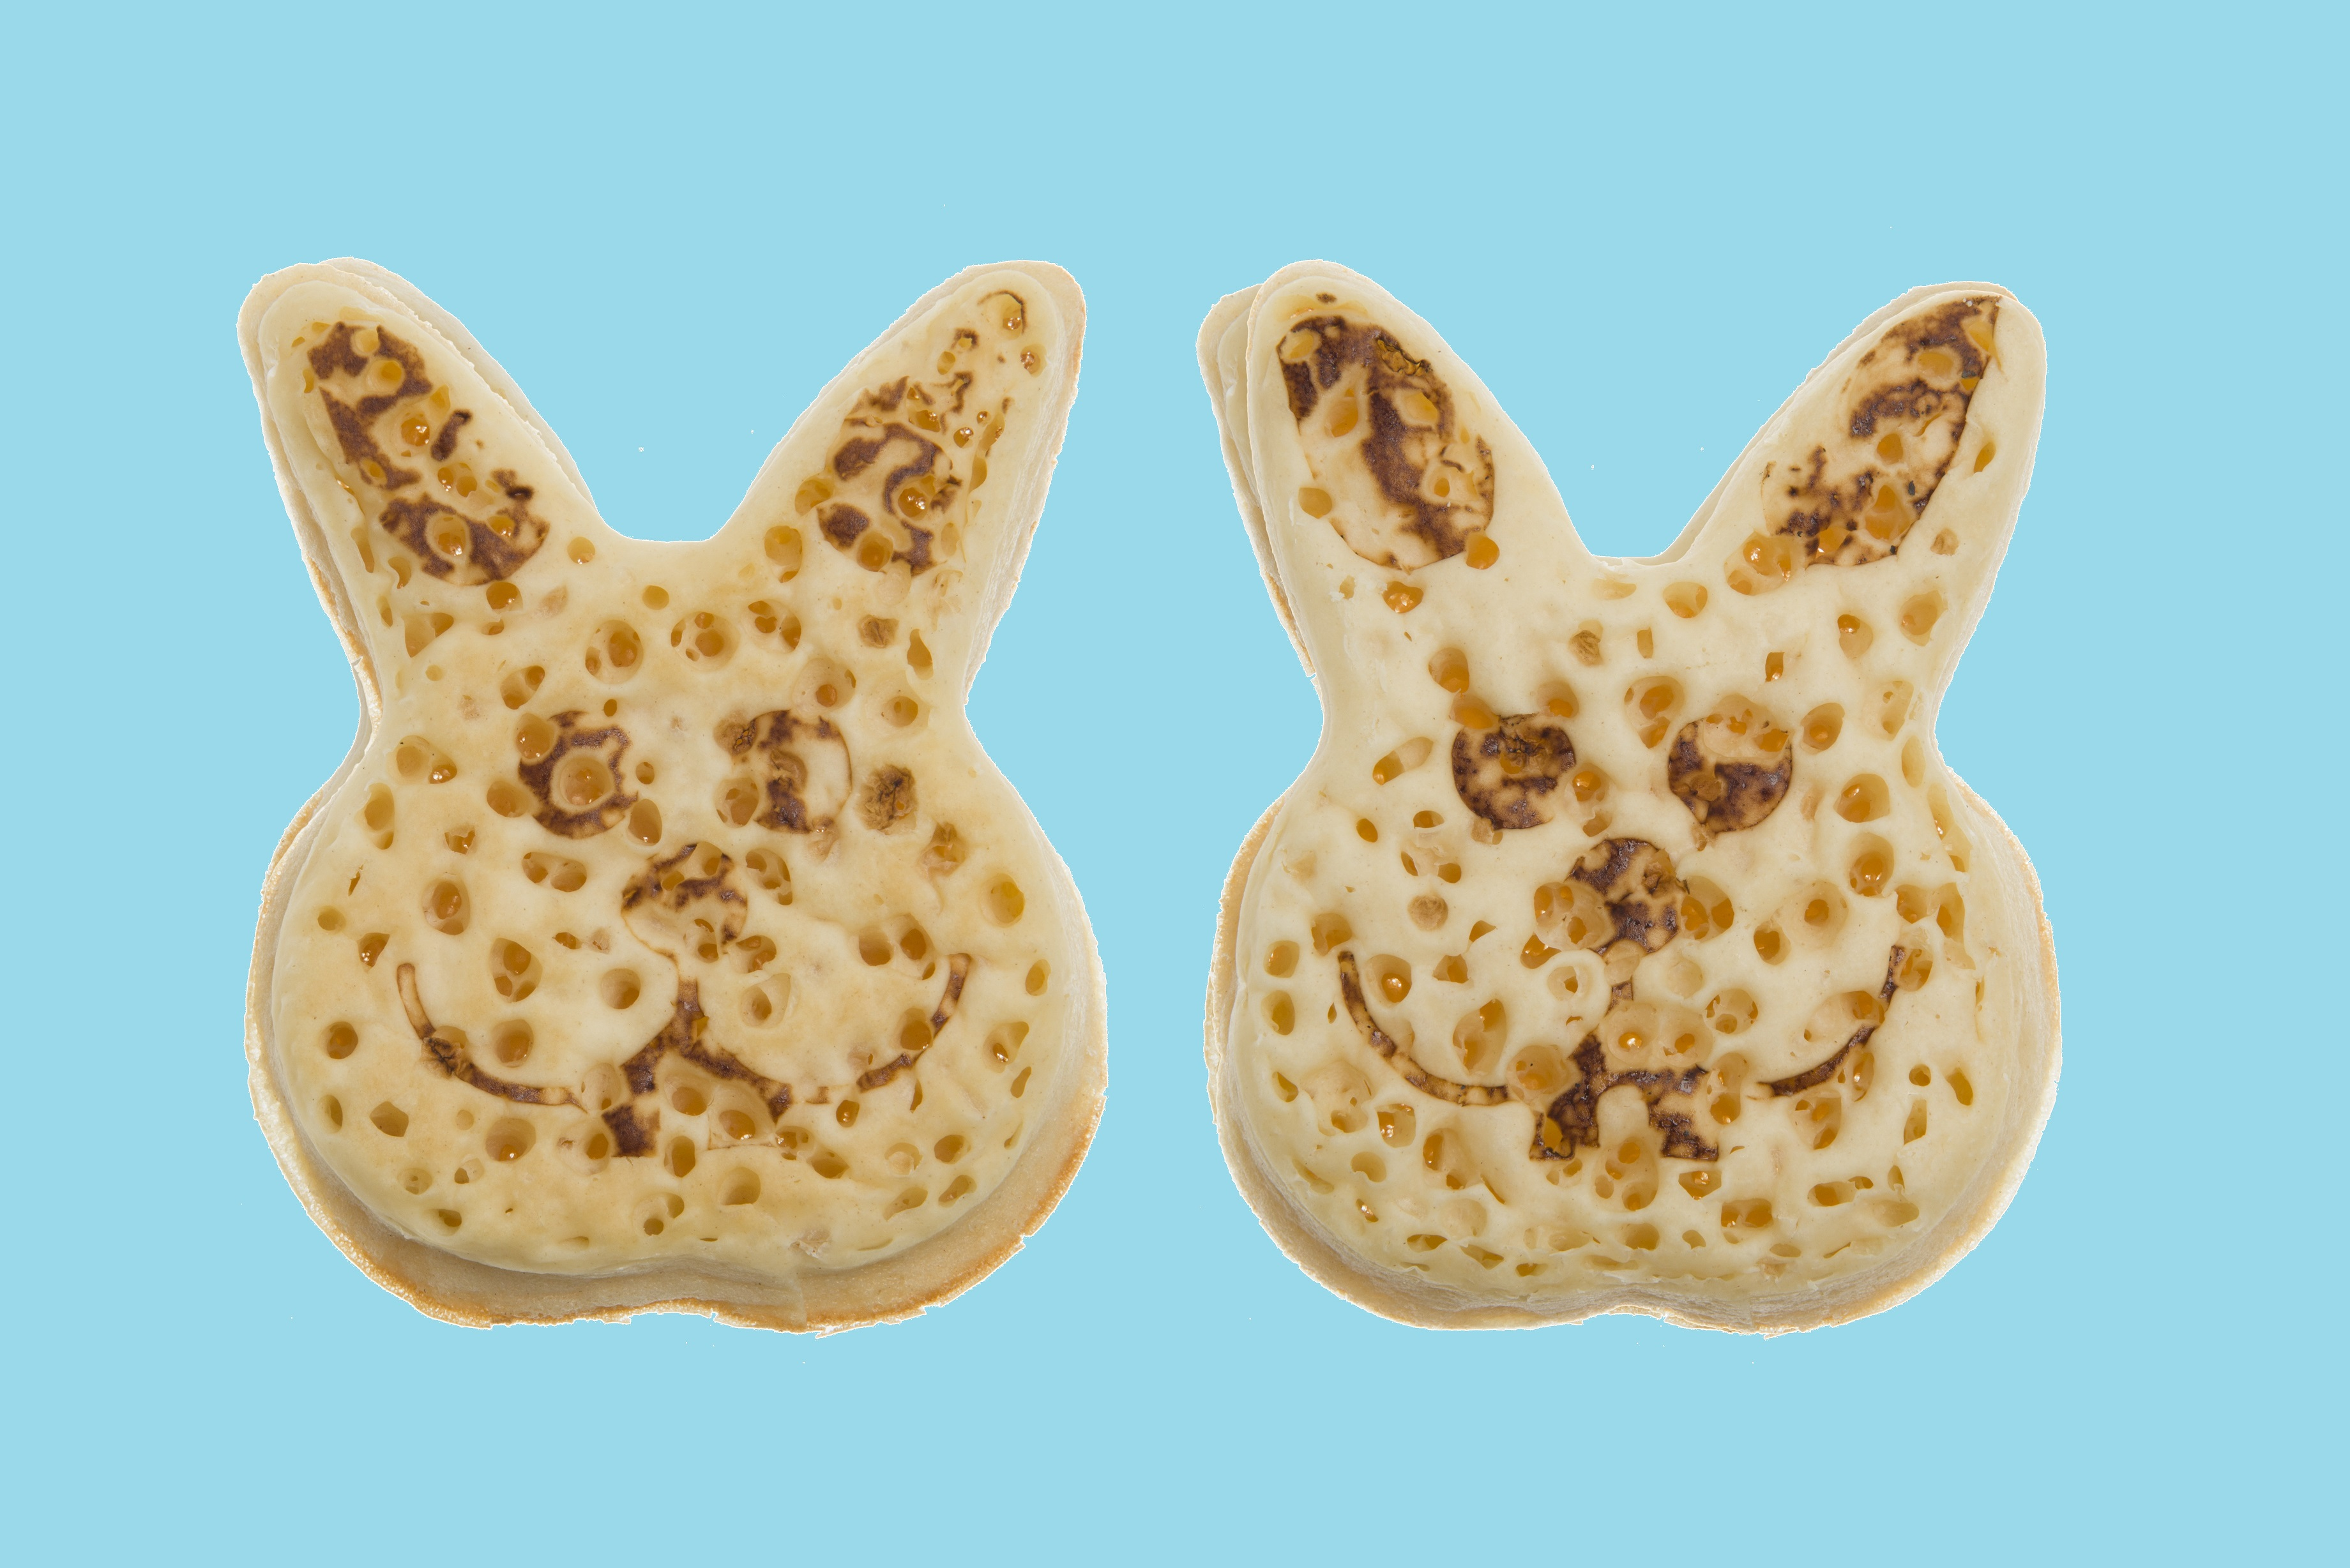 Bunny crumpets are here because nothing says Easter like eating a rabbit's face